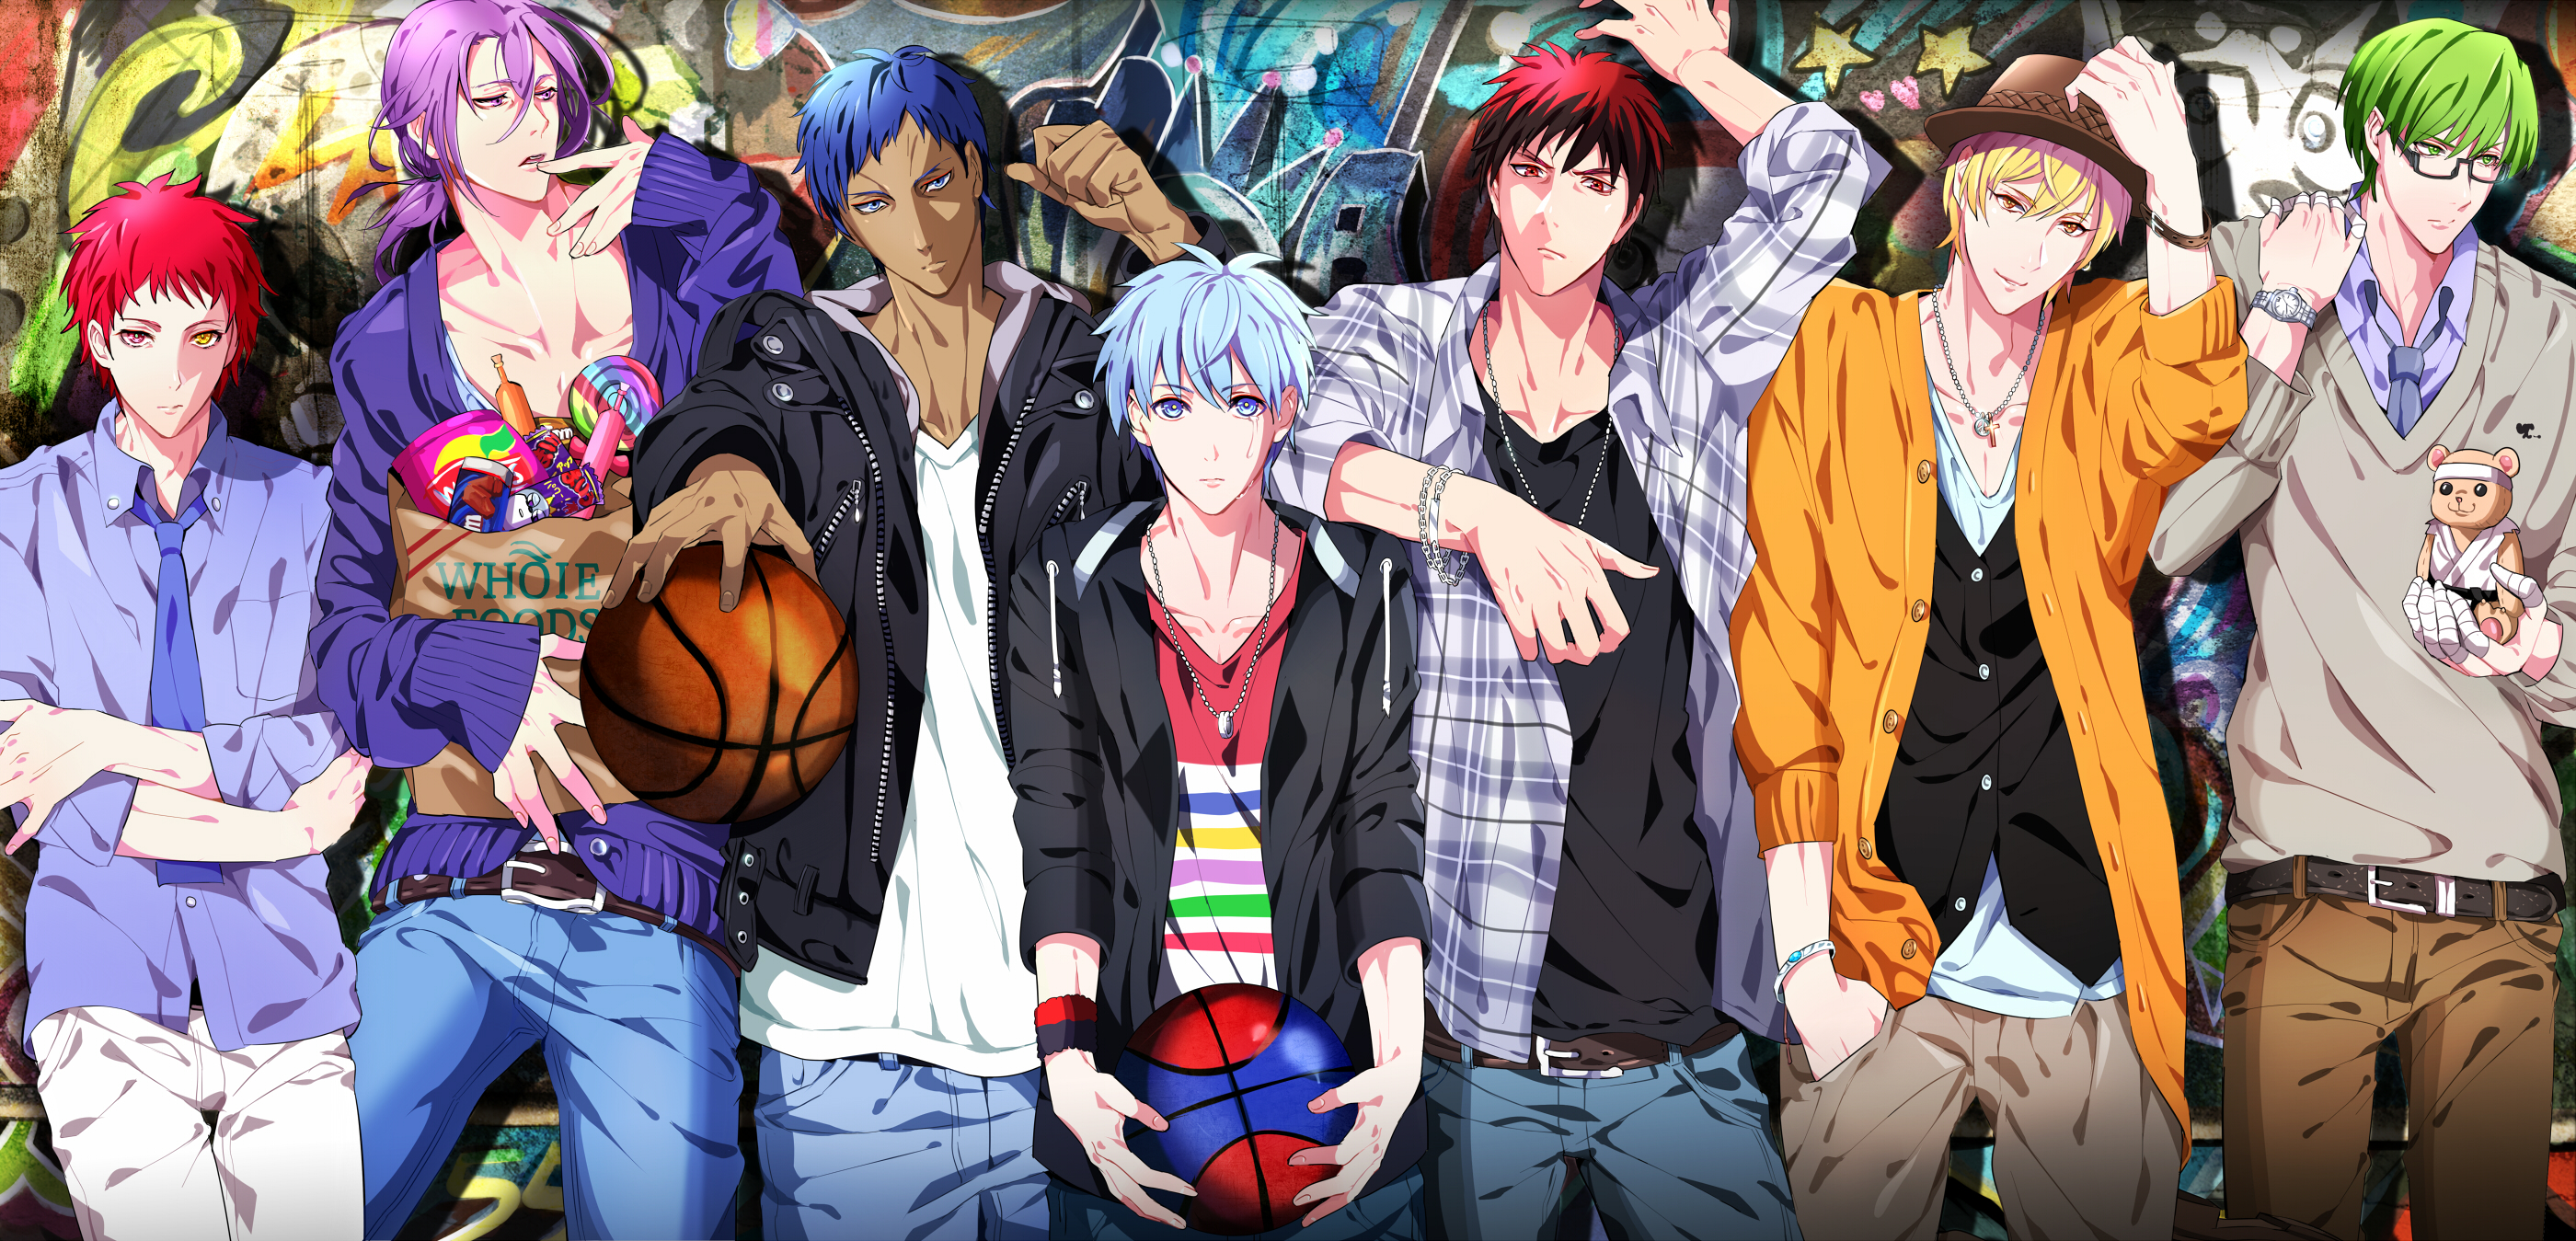 Kuroko no basuke kurokos basketball zerochan anime image board generation of miracles download kiseki no sedai image voltagebd Image collections